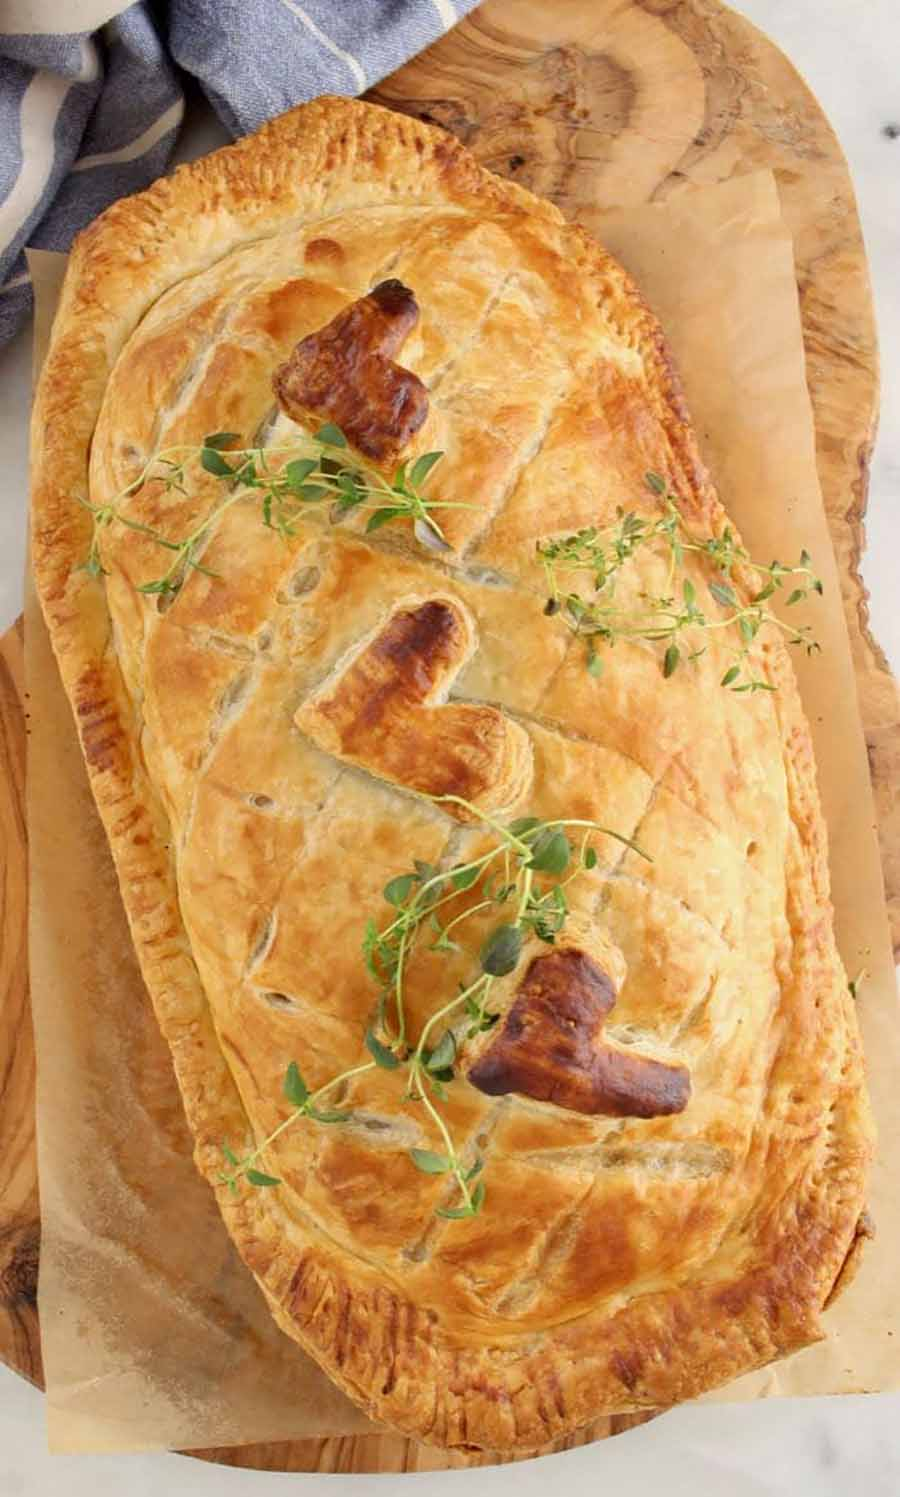 Overhead view of a fully cooked mushroom wellington.